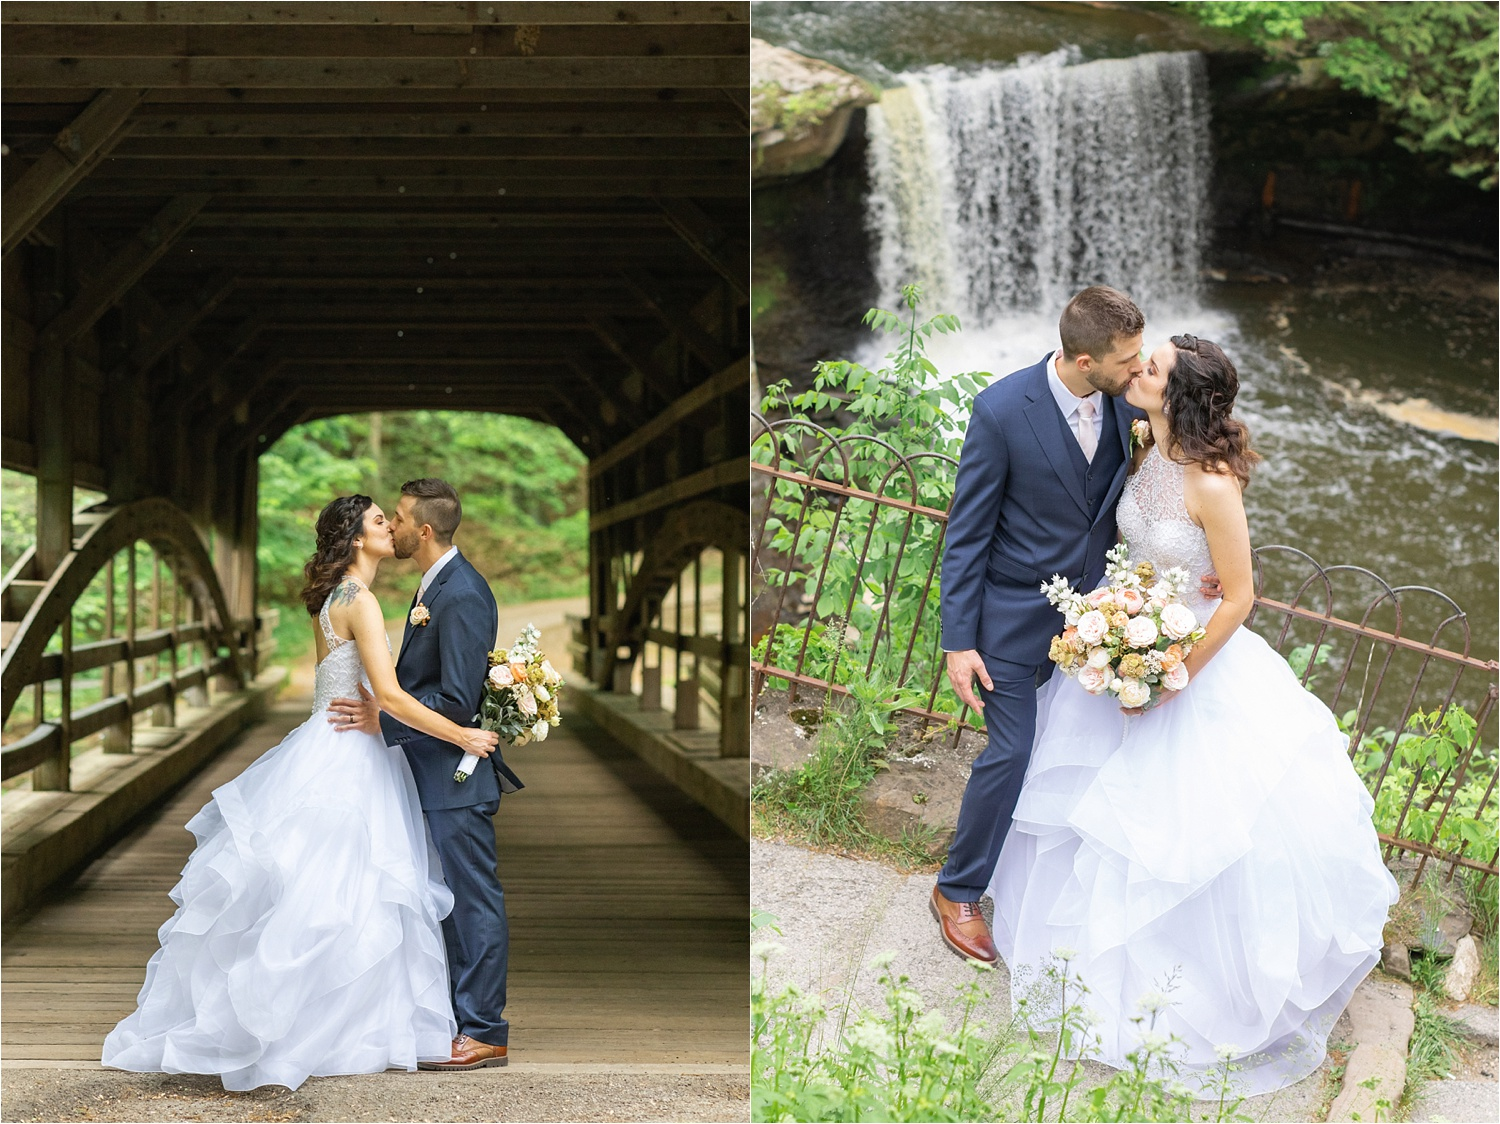 lanterman's mill waterfall and covered bridge kissing wedding photo